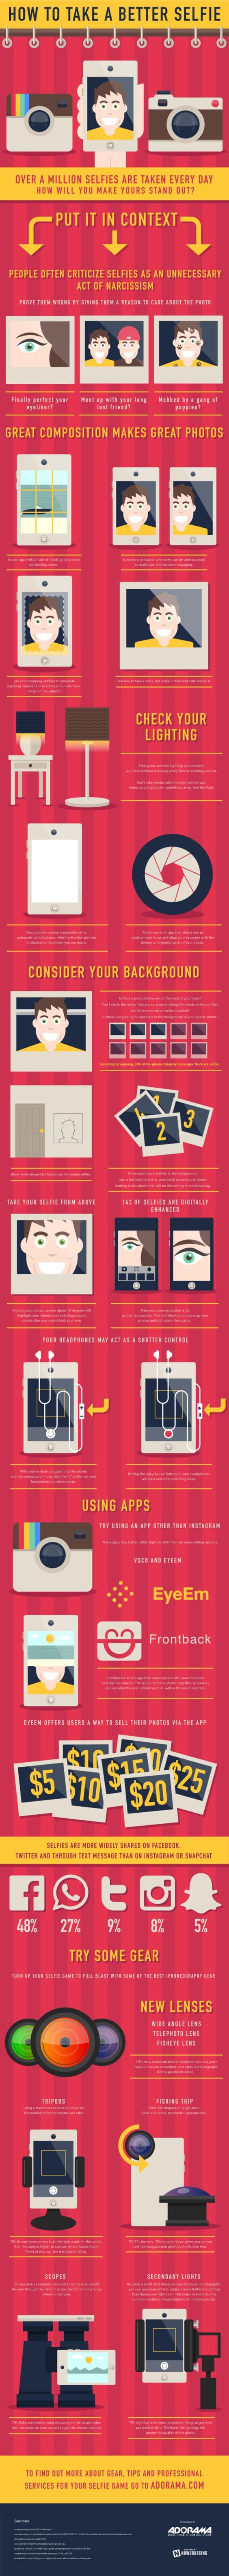 tips-to-take-a-better-selfie-with-your-smartphone-tips-tipsographic